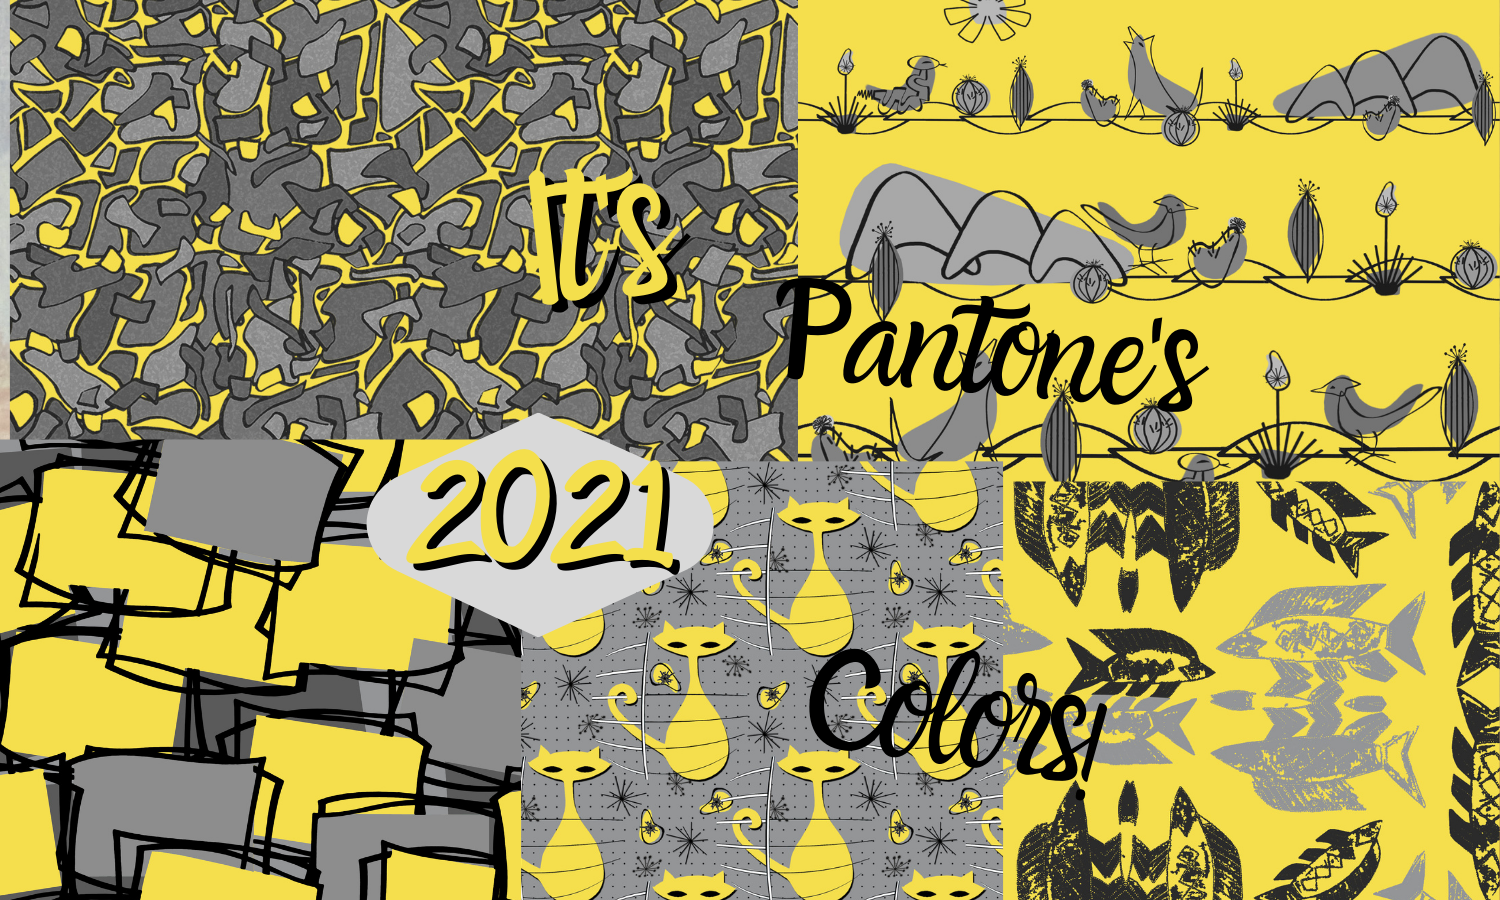 Pantone's 2021 Colors Are Here!